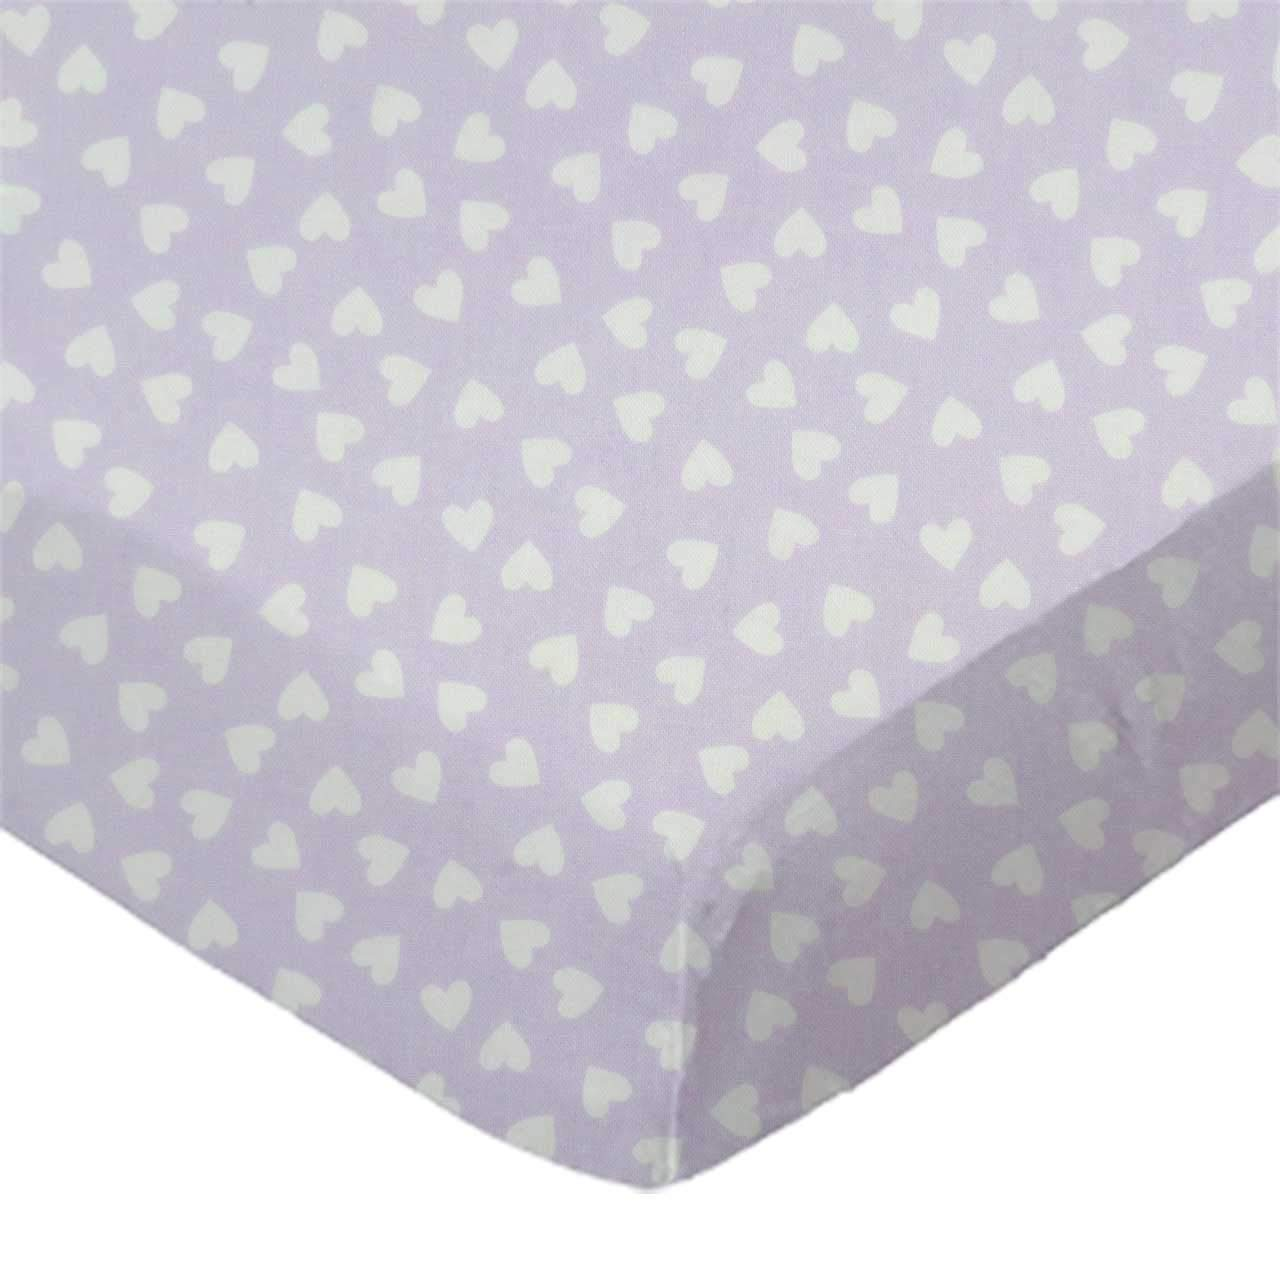 SheetWorld Fitted Bassinet Sheet - Hearts Pastel Lavender Woven - Made In USA by sheetworld   B003R9QGFE